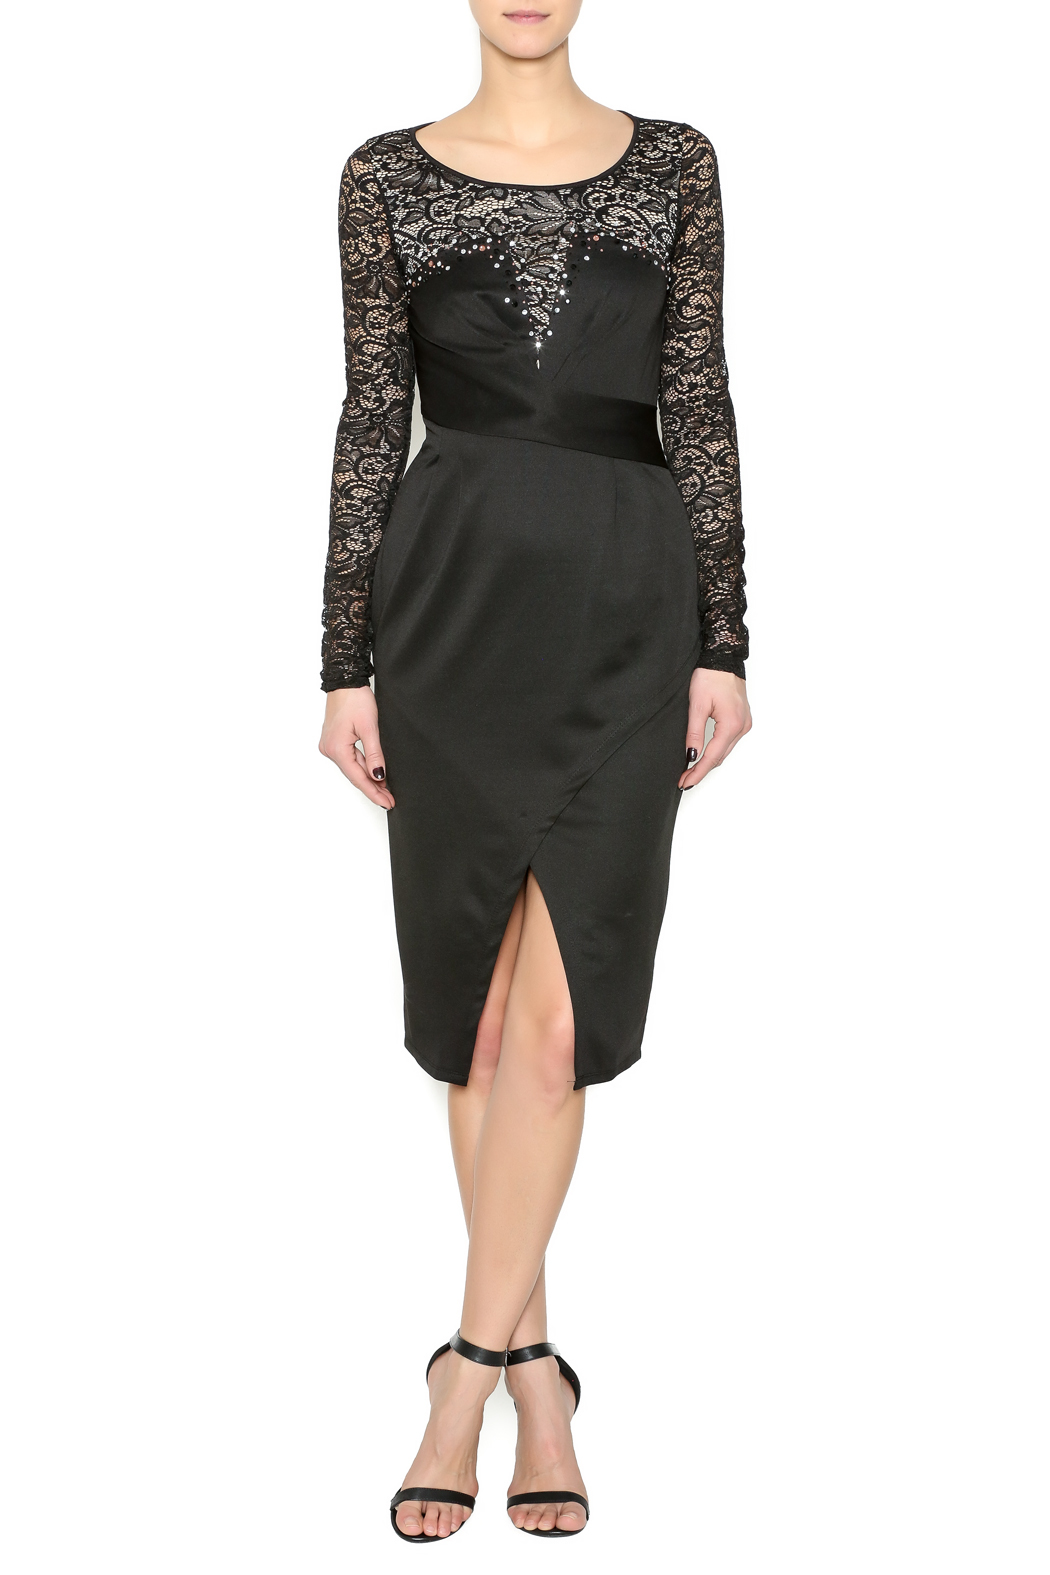 Symphoney Neck Lace Black Dress - Main Image